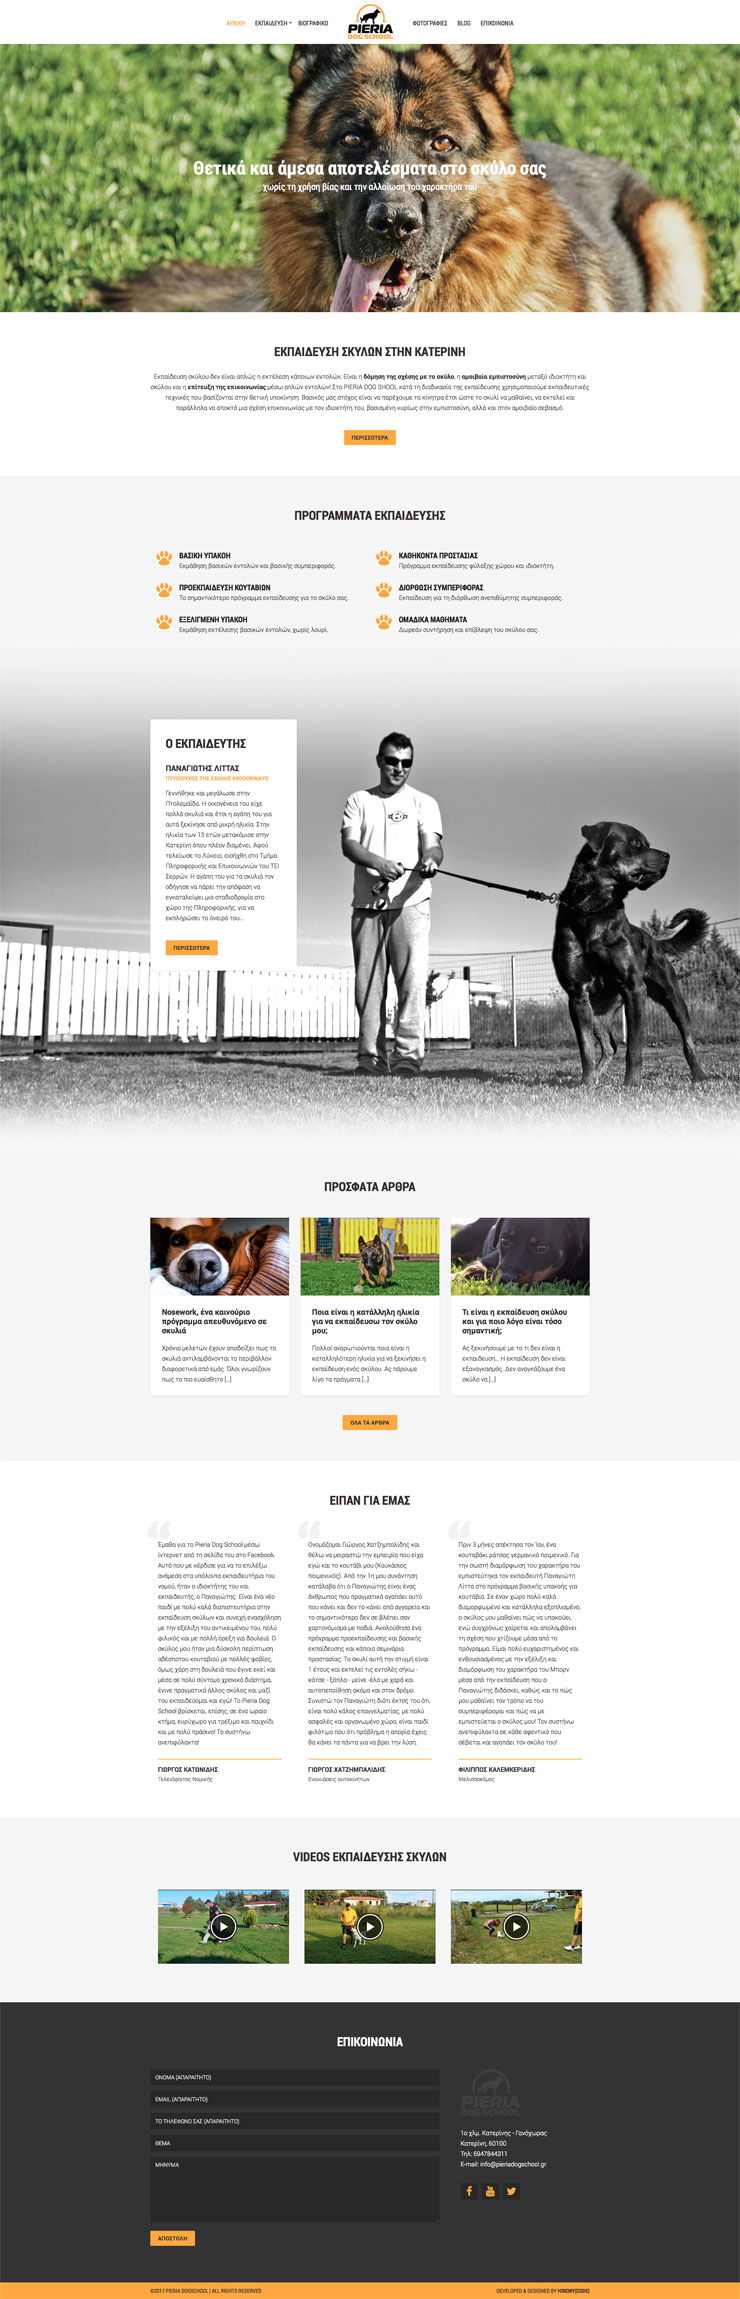 Pieria Dog School redesign